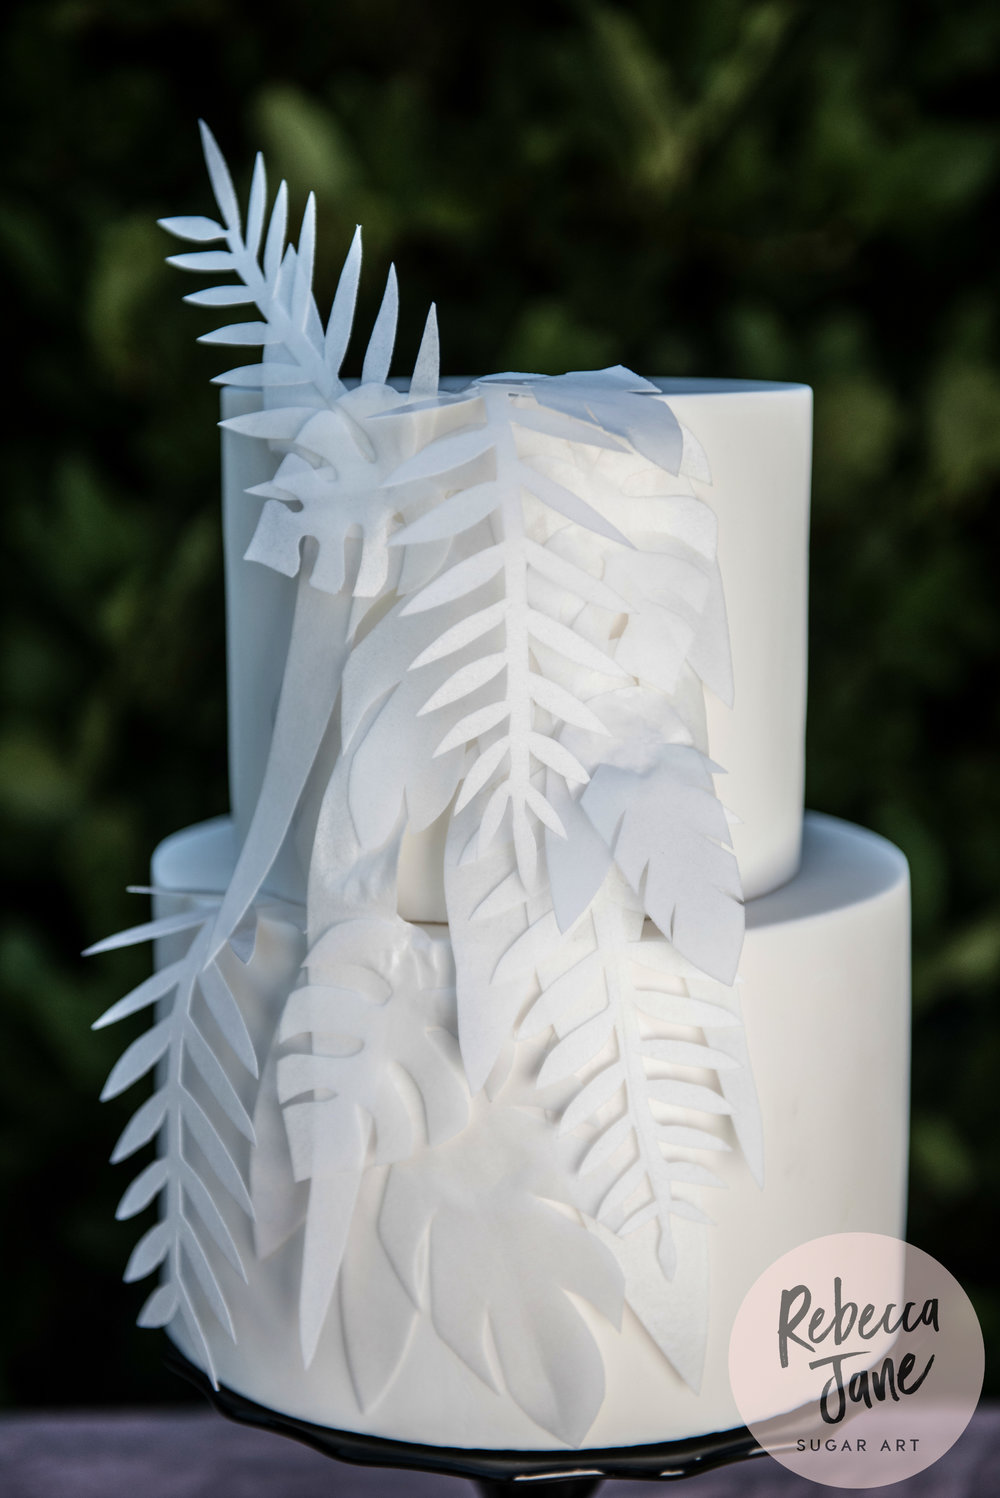 Rebecca Jane Sugar Art - wafer paper foliage white modern wedding cake